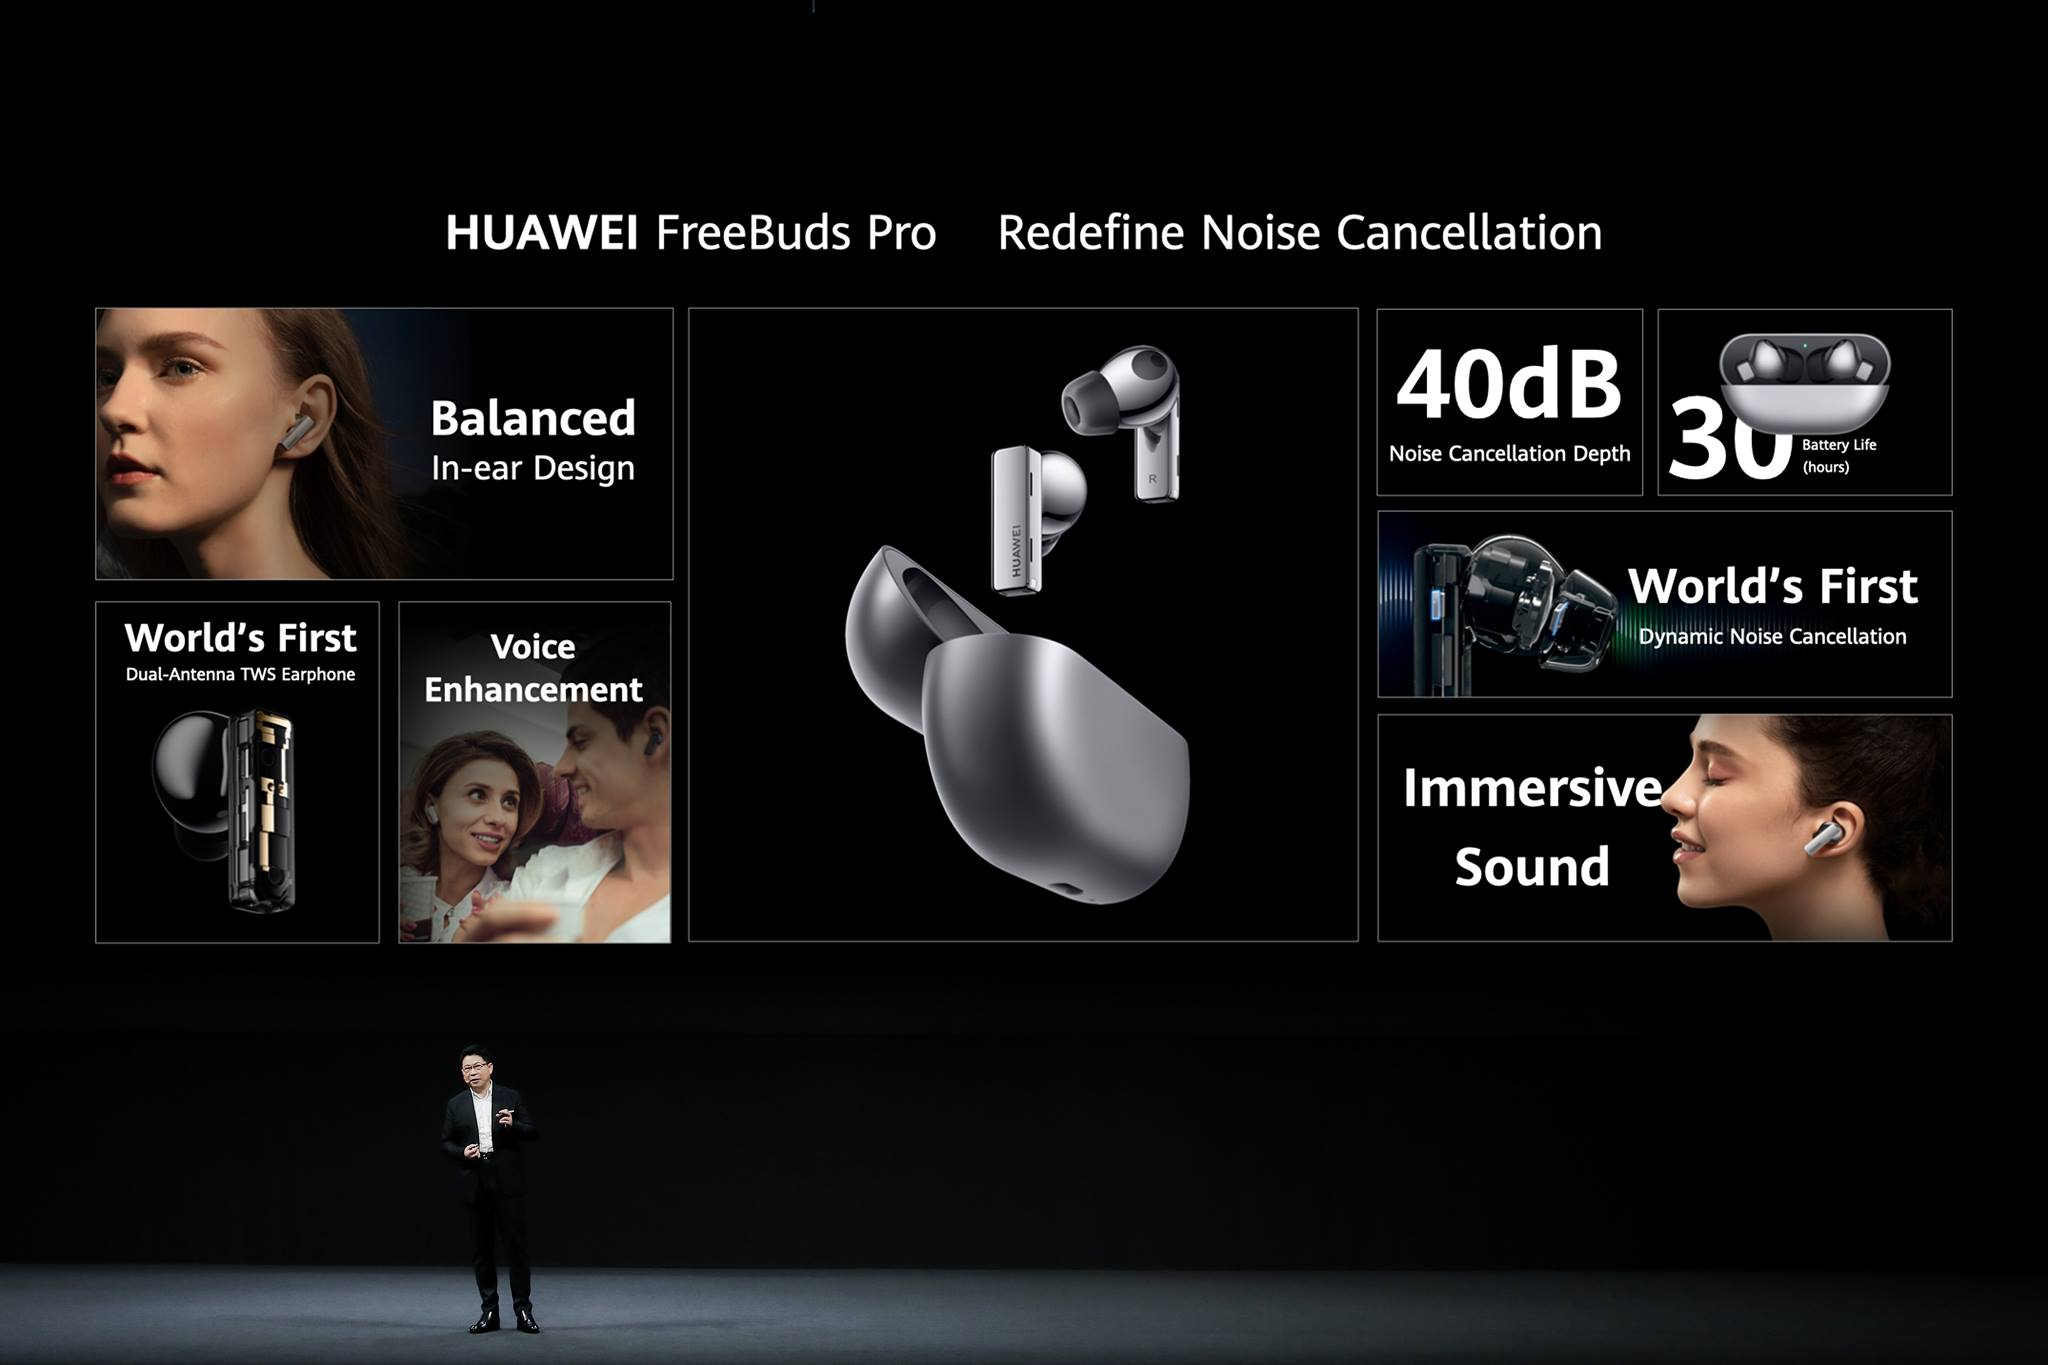 The world's first pair of Dynamic Noise Cancellation earphones, #HUAWEIFreeBudsPro will help you fall in love with your favourite music all over again🎵